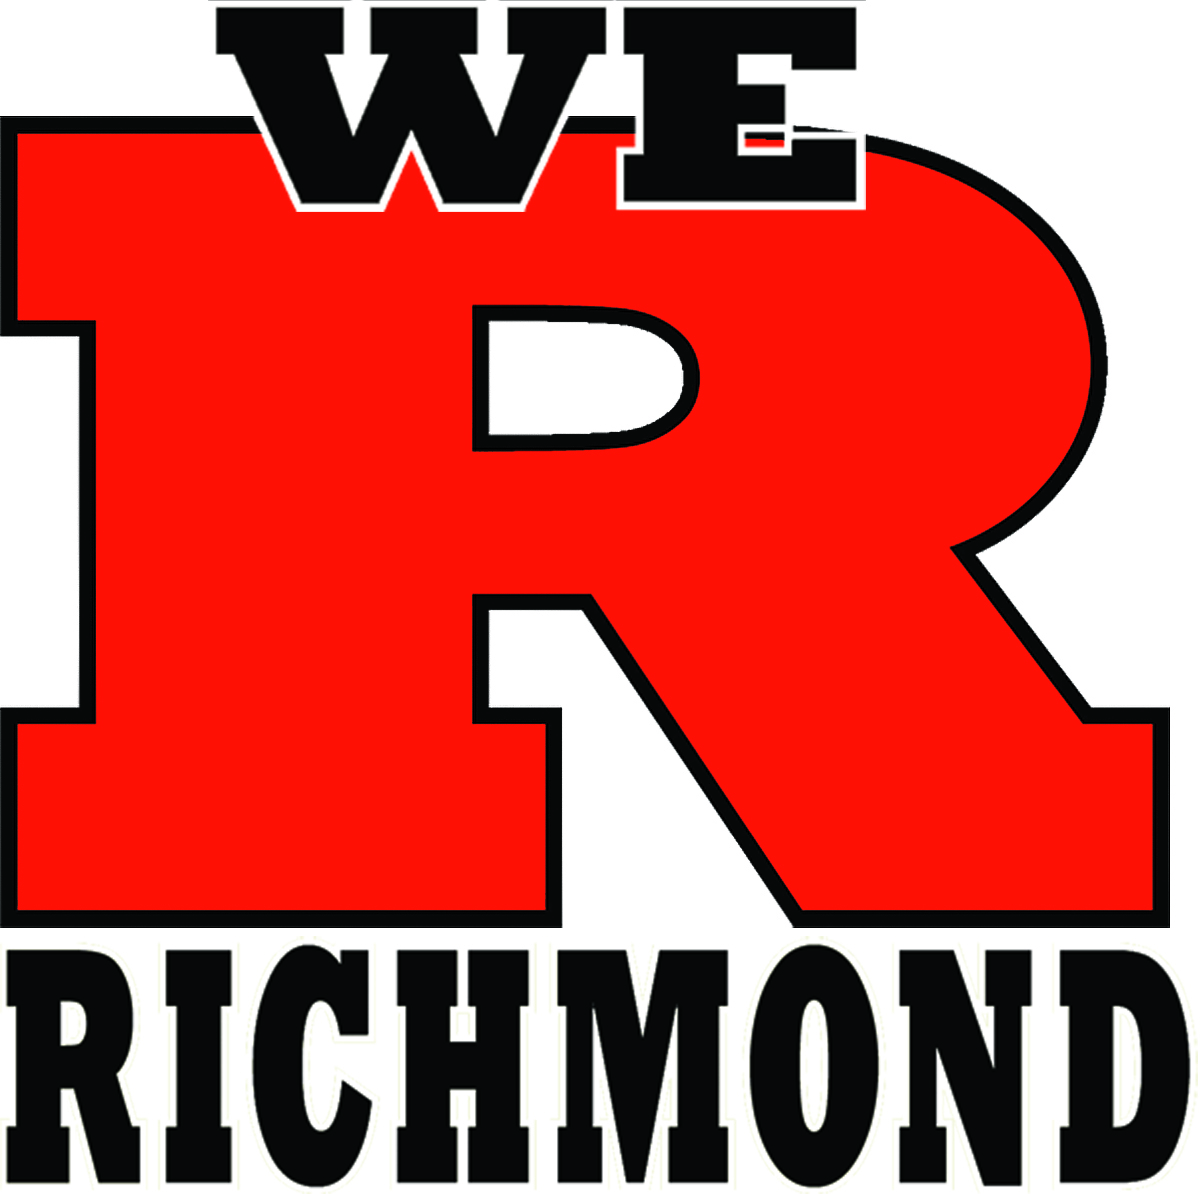 RICHMONDREDDEVILS